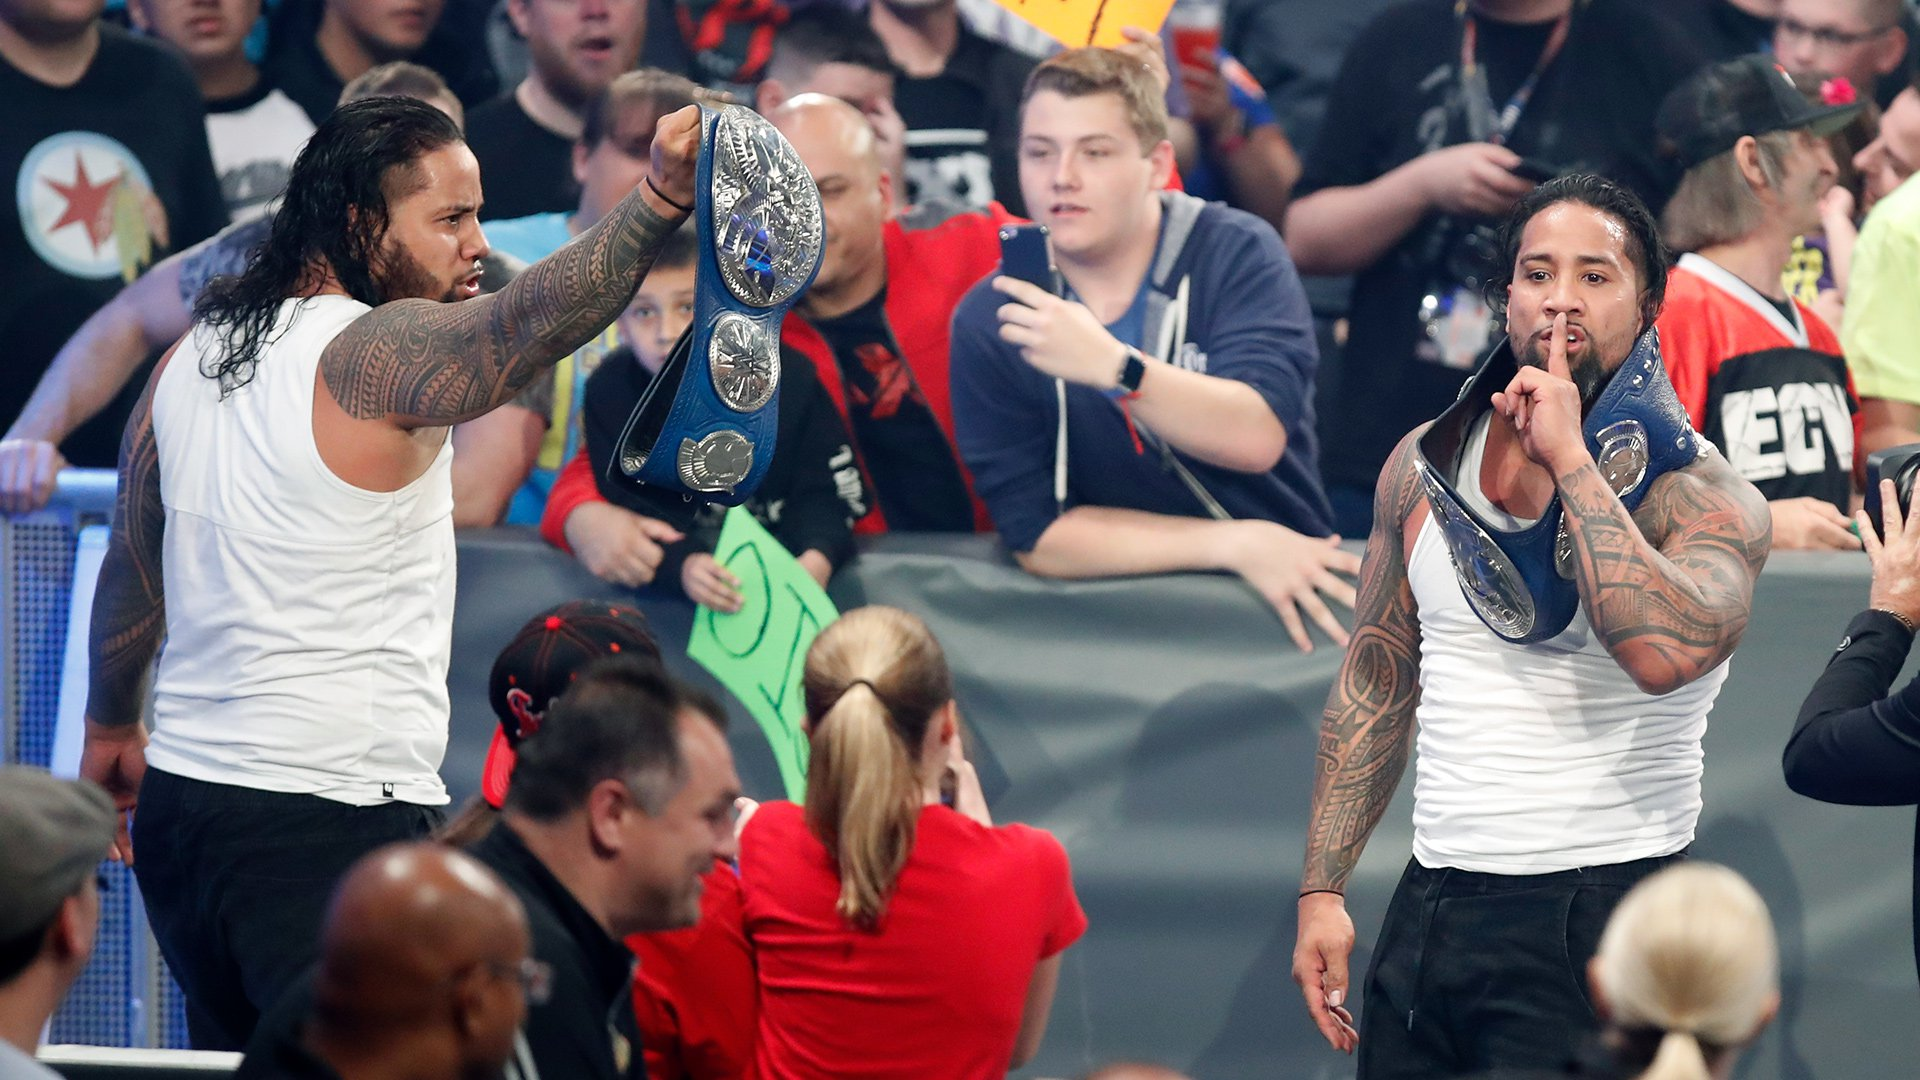 The Usos escape with a victory and retain their coveted SmackDown Tag Team Titles.